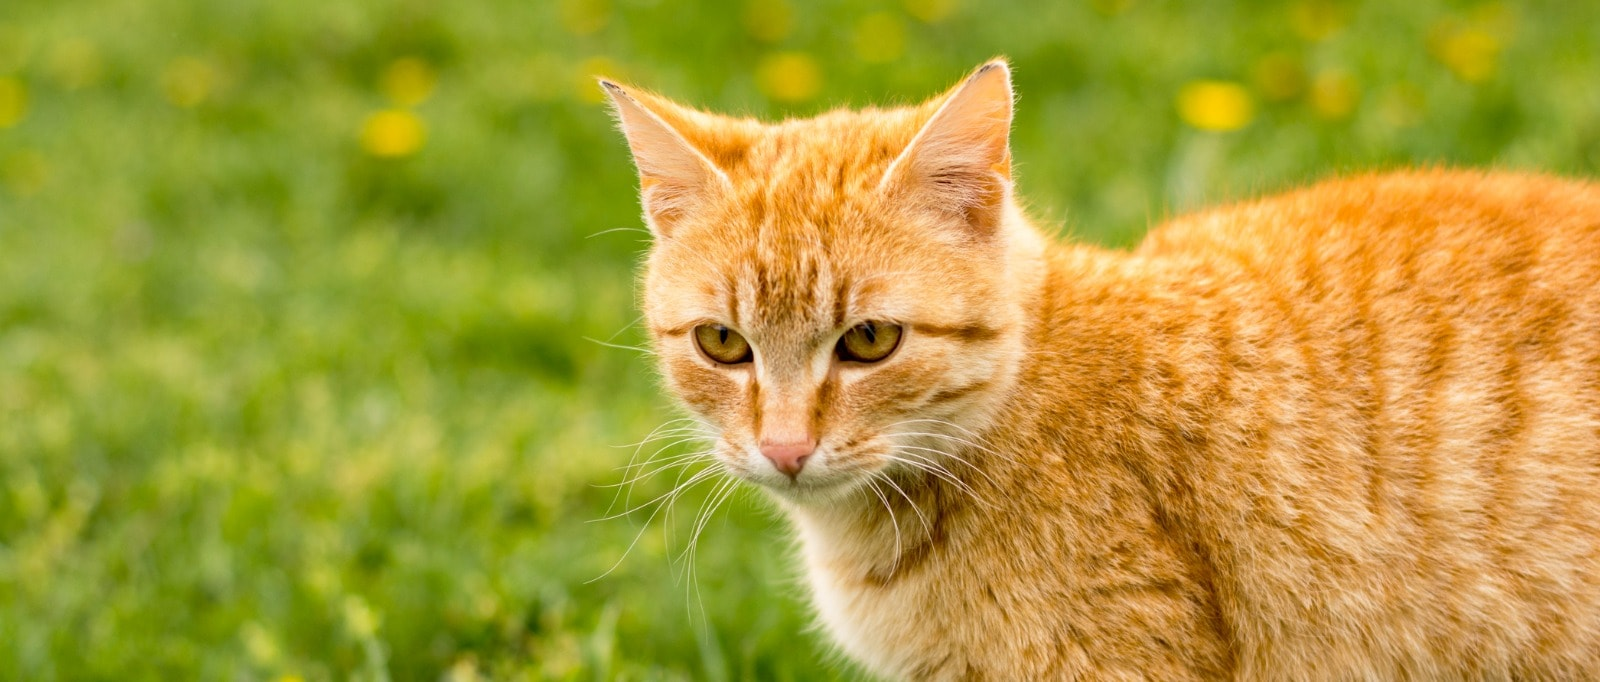 Urinary Oxalate for Cats